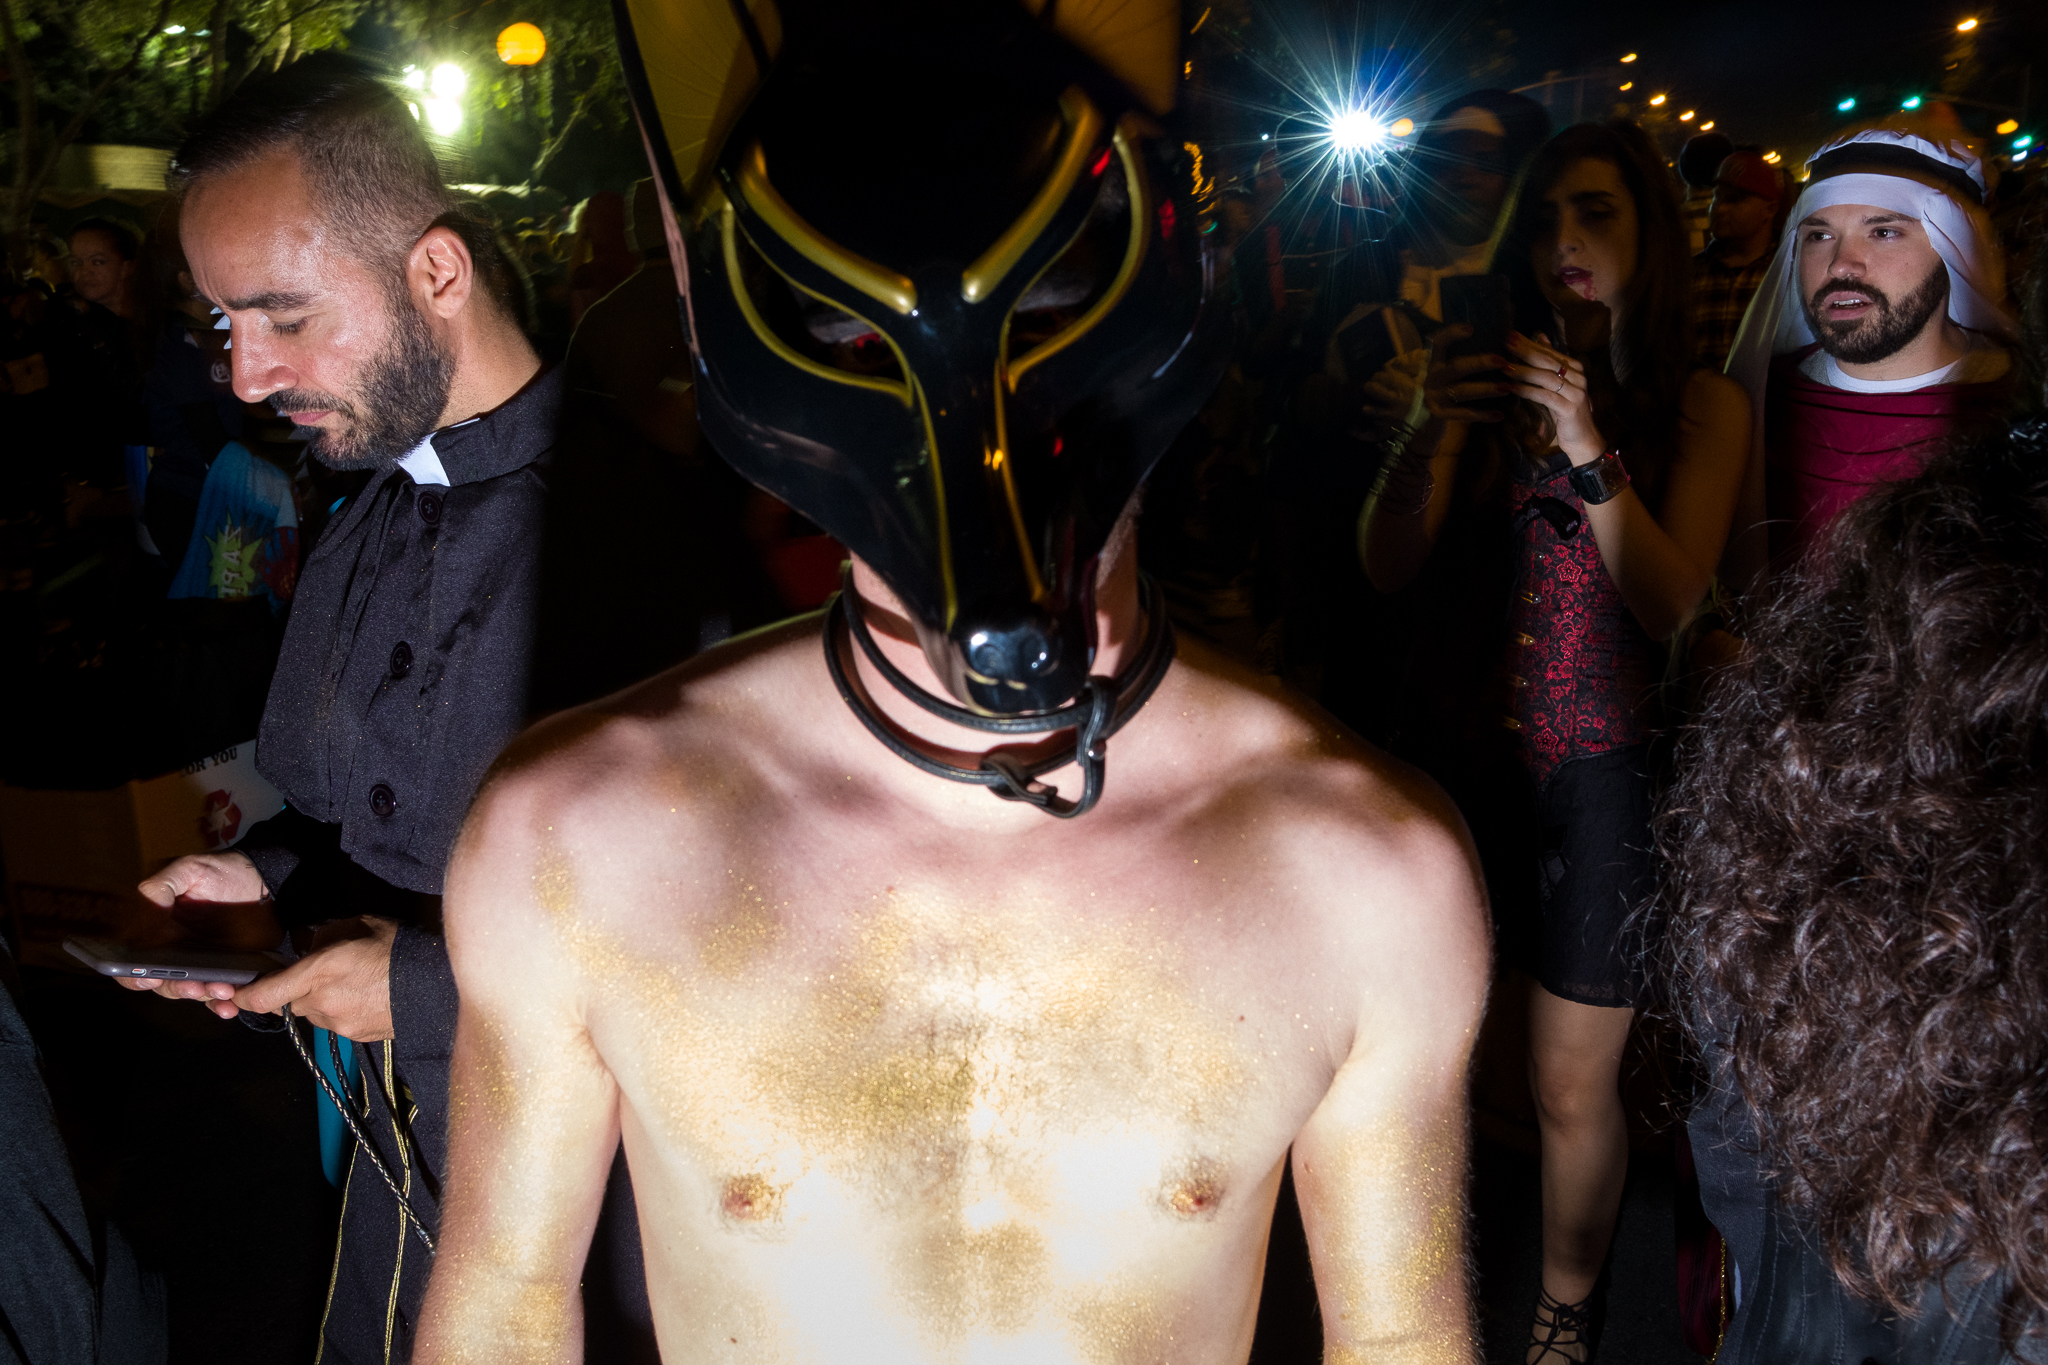 10 Things I Learned Shooting Halloween Street Photography in WeHo